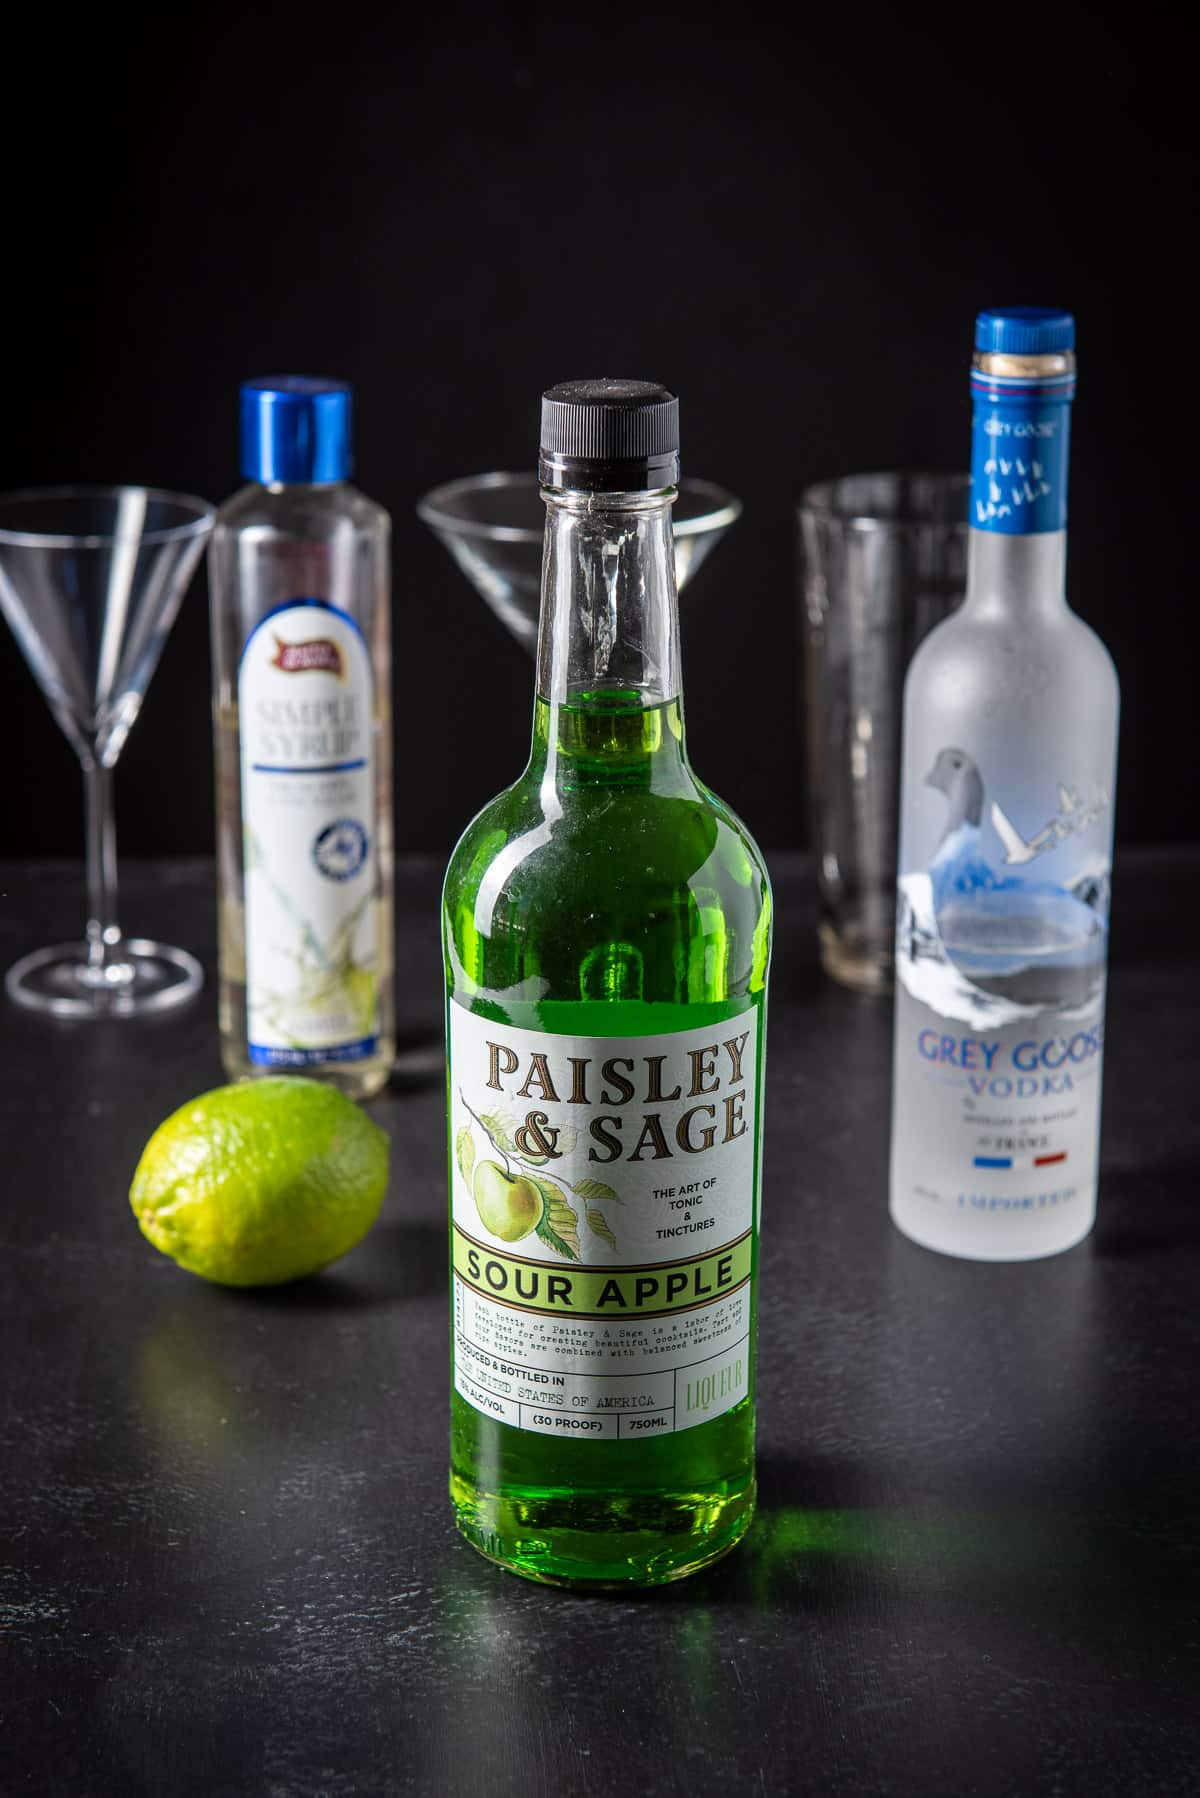 Sour apple liqueur, vodka, lime and simple syrup for the appletini cocktail